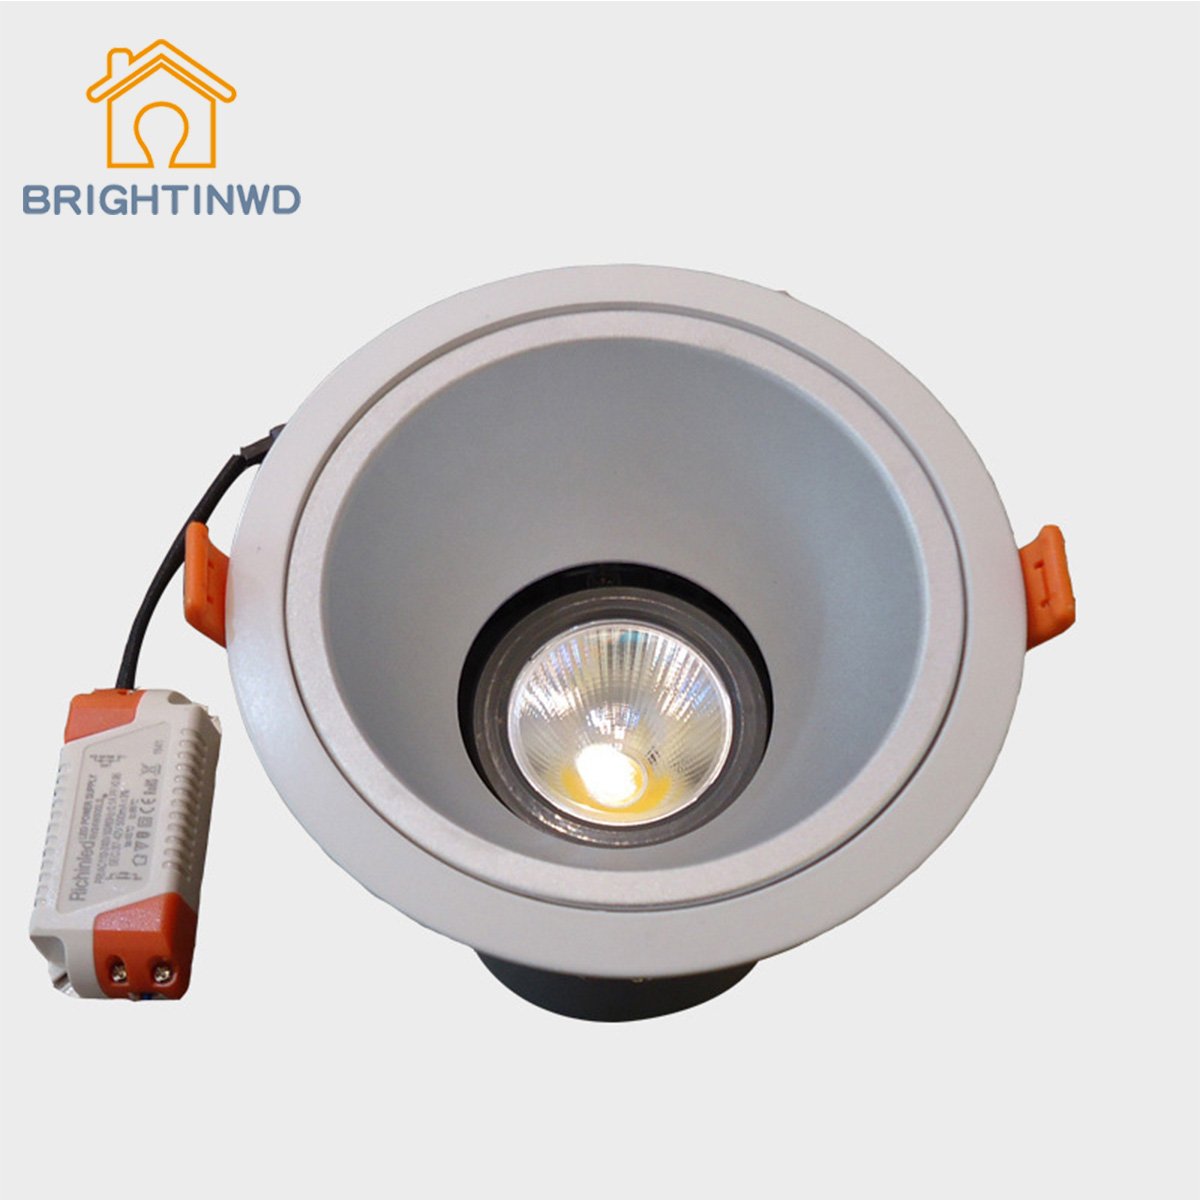 BRIGHTINWD New LED Ceiling Spotlights Special 15W Durable Energy-Efficient Commercial Hotel Restaurant COB Lighting energy efficient architecture